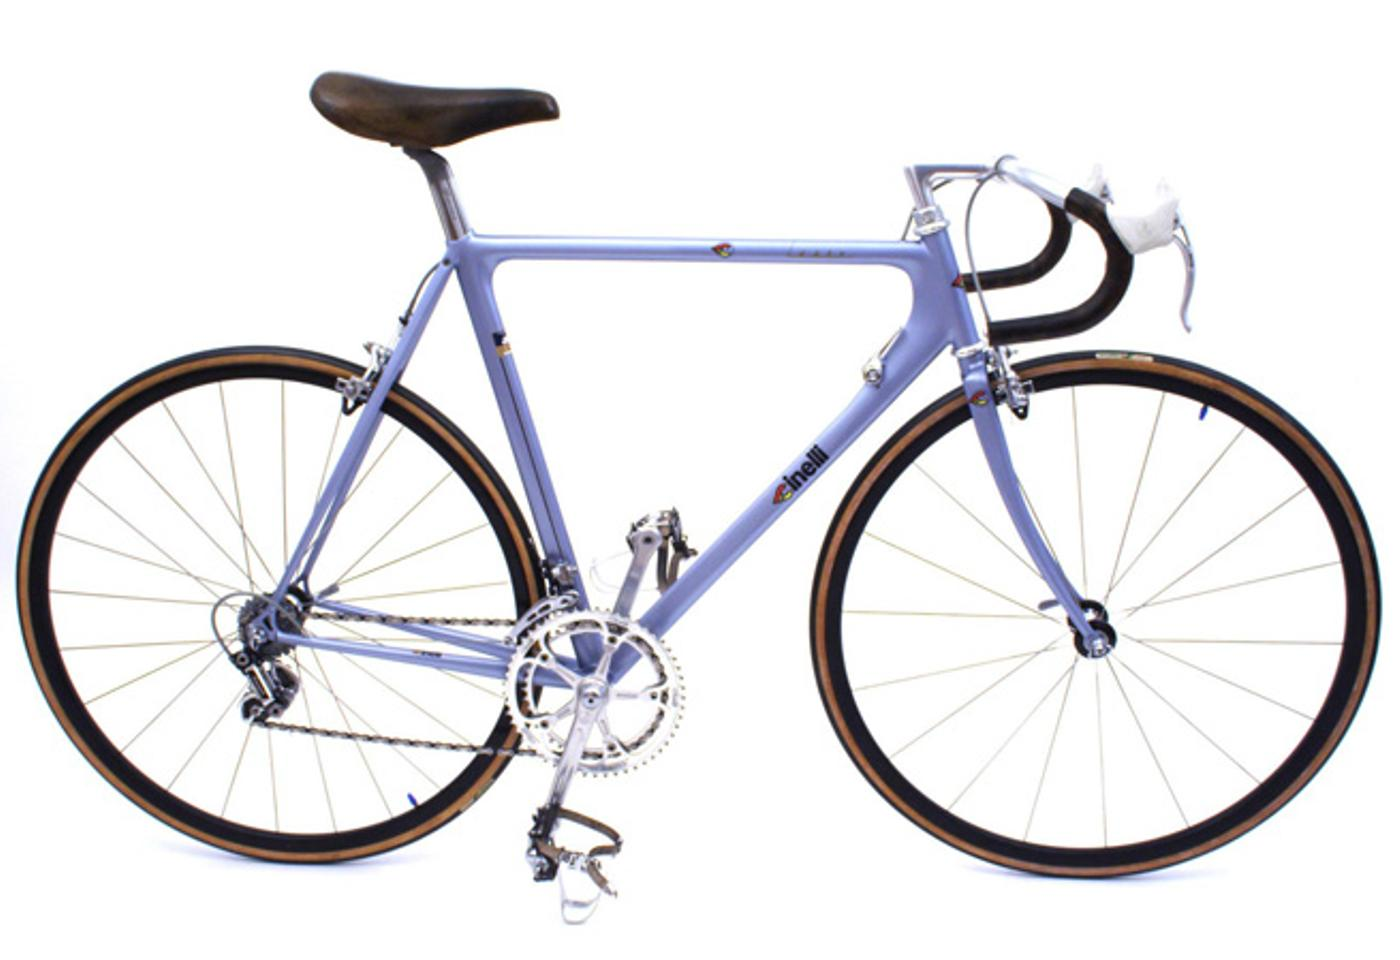 eBay Gem: 1985 Cinelli Laser Road